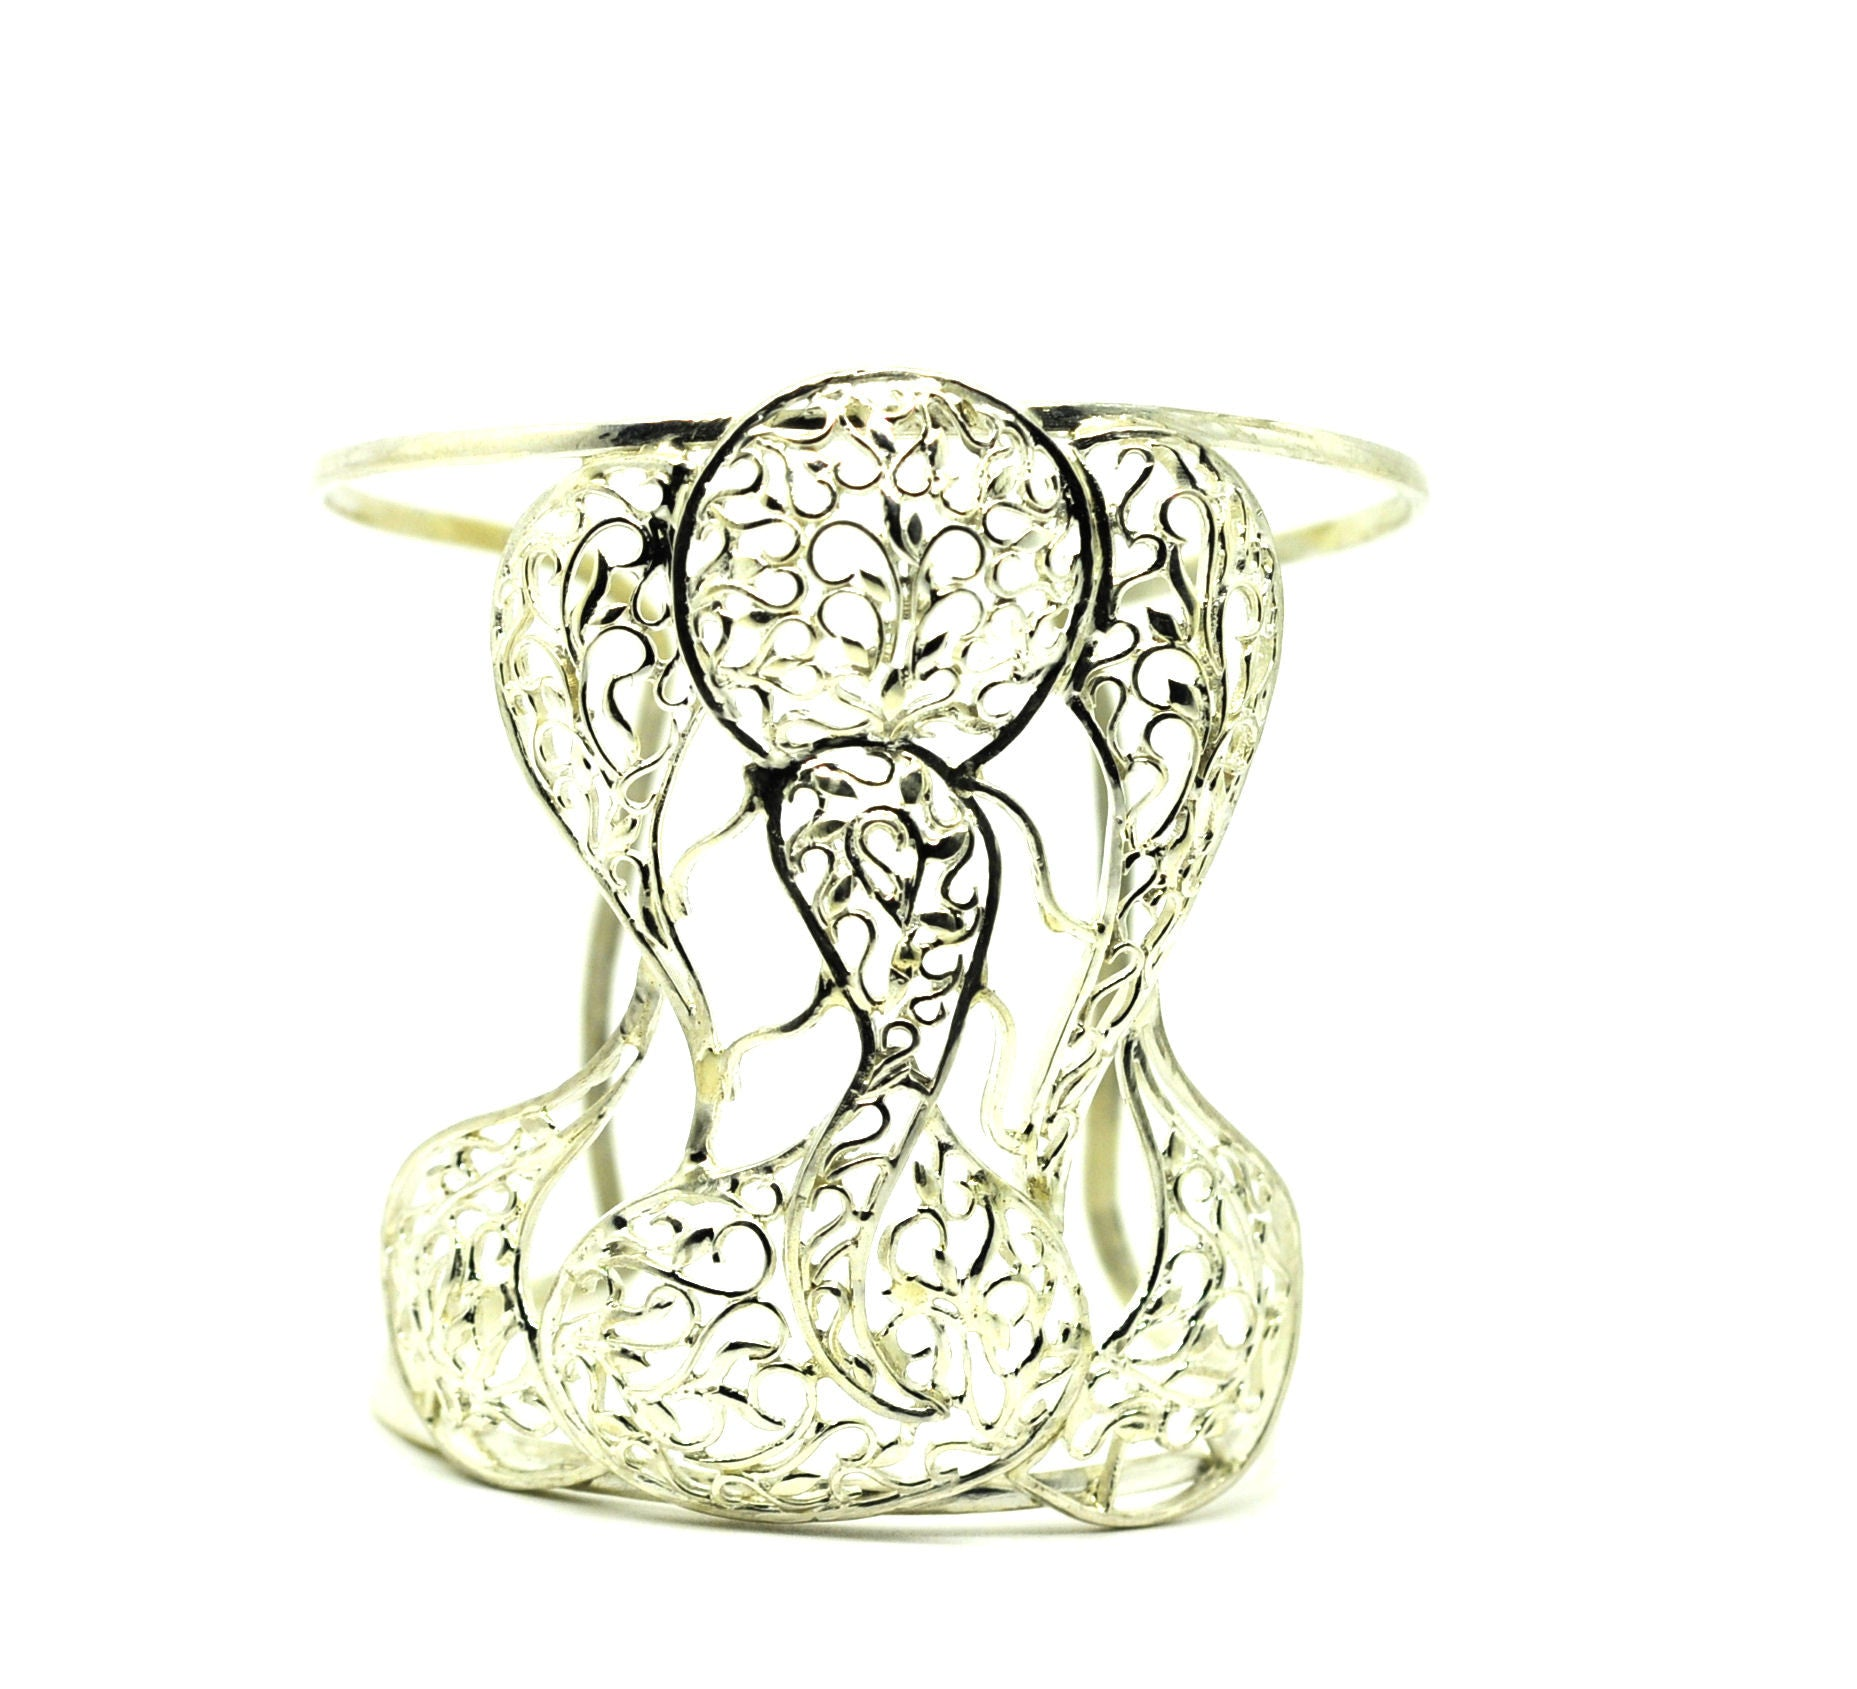 On Sale-Ganesha Filigree Cuff